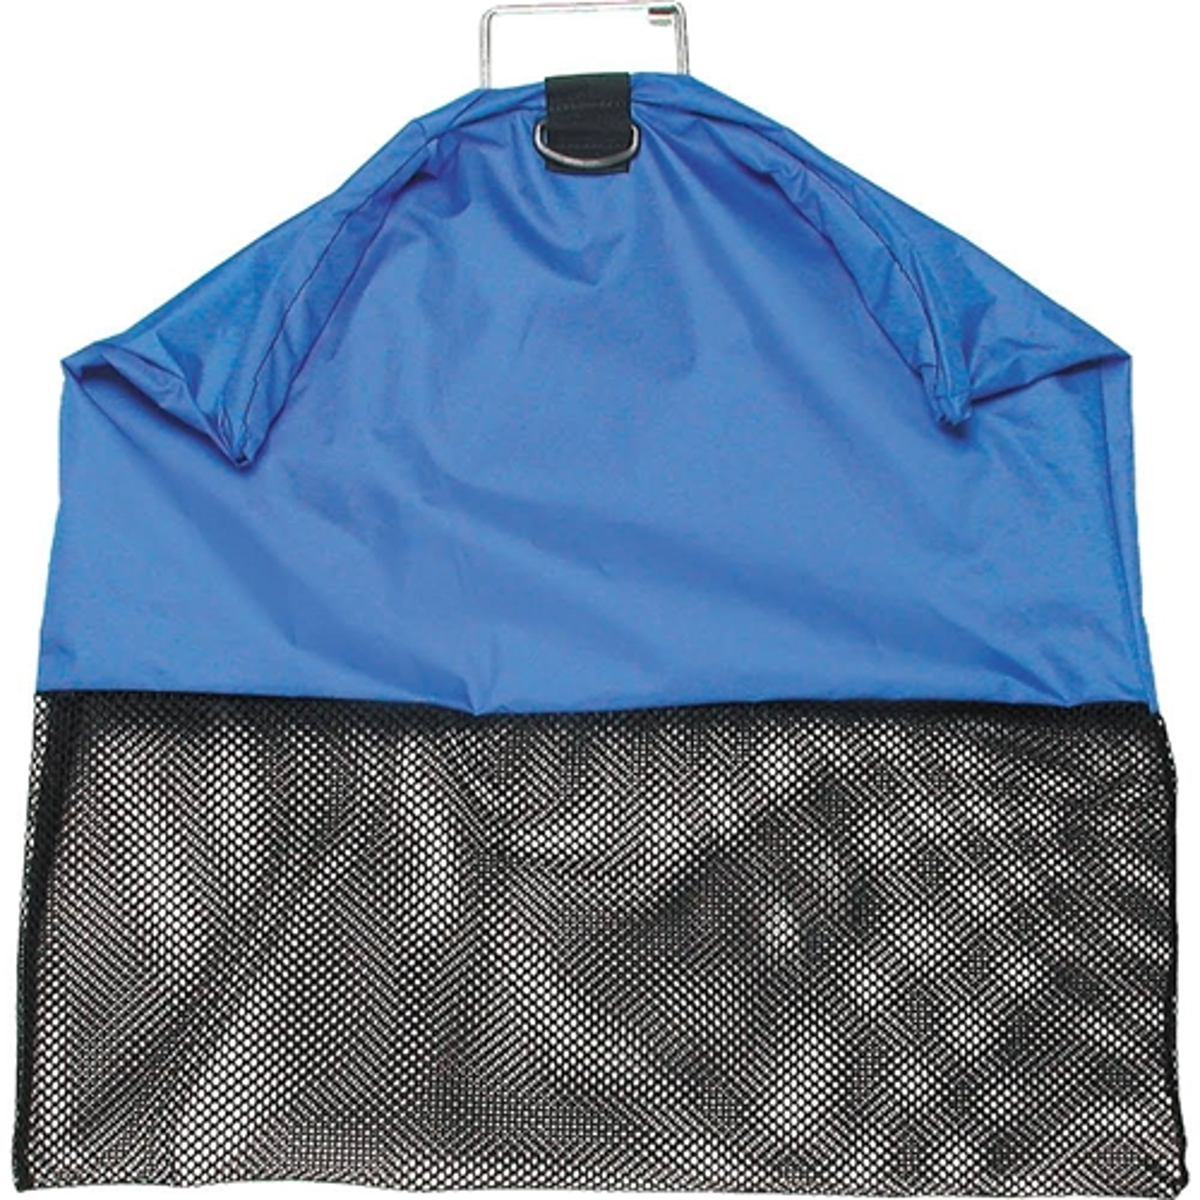 Innovative Deluxe Wire Handle Mesh Bag 24 in. x 30 in.